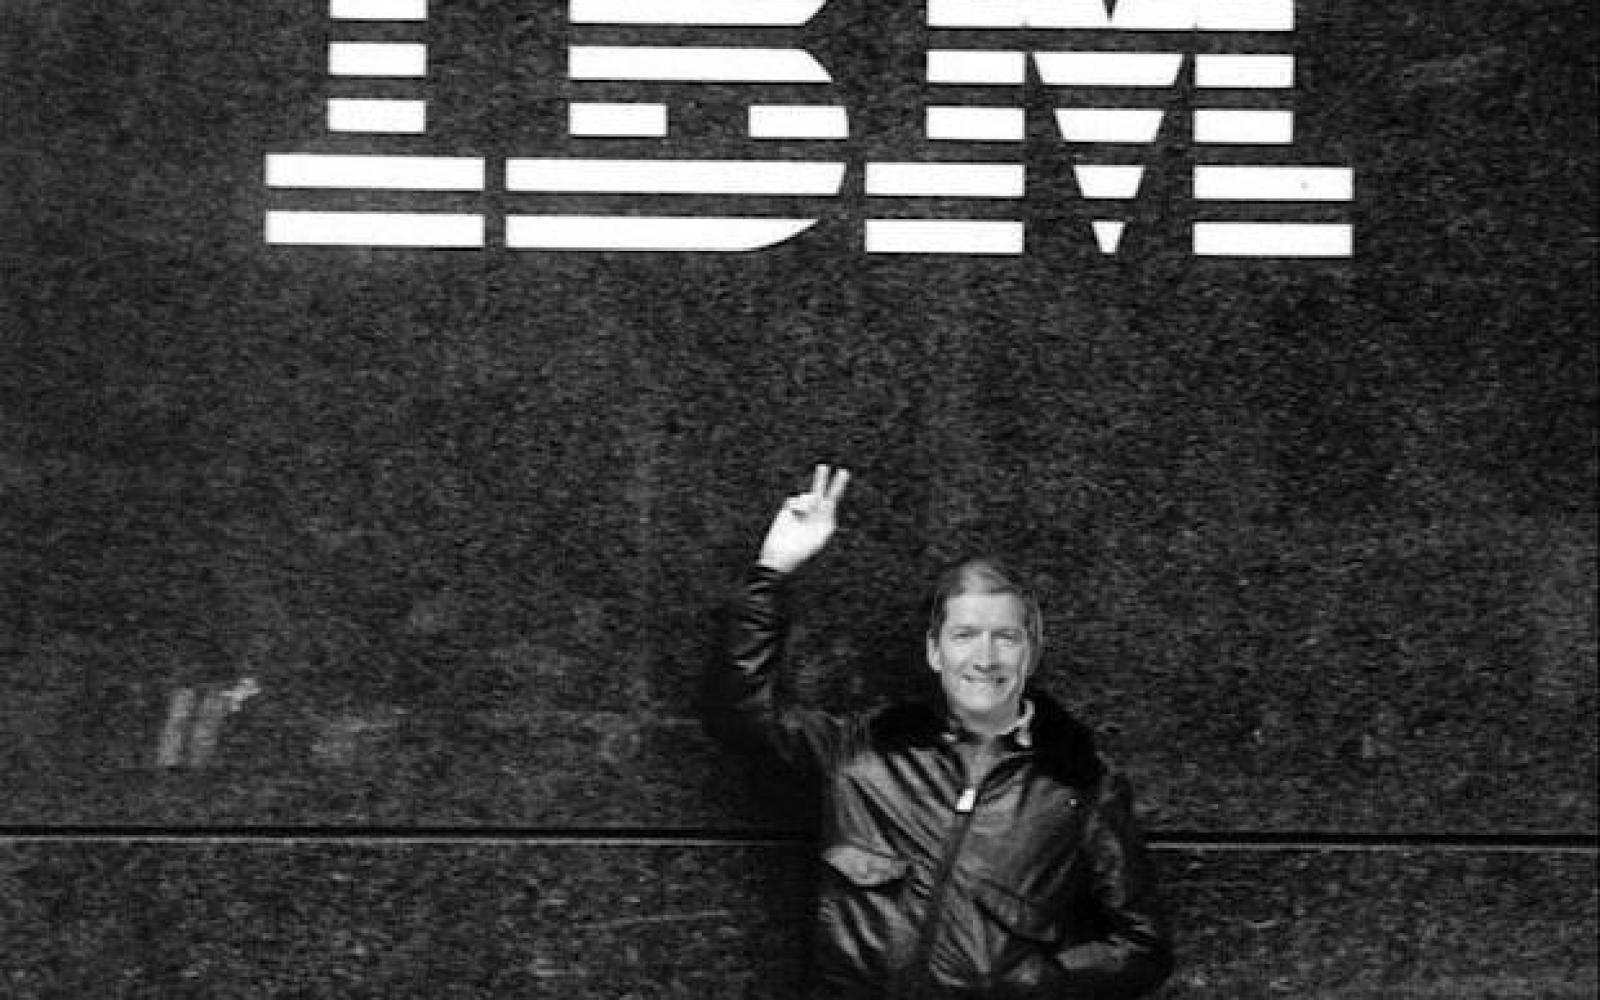 Tim Cook to employees on IBM partnership: 'I'm really excited to see it take off' (Memo)